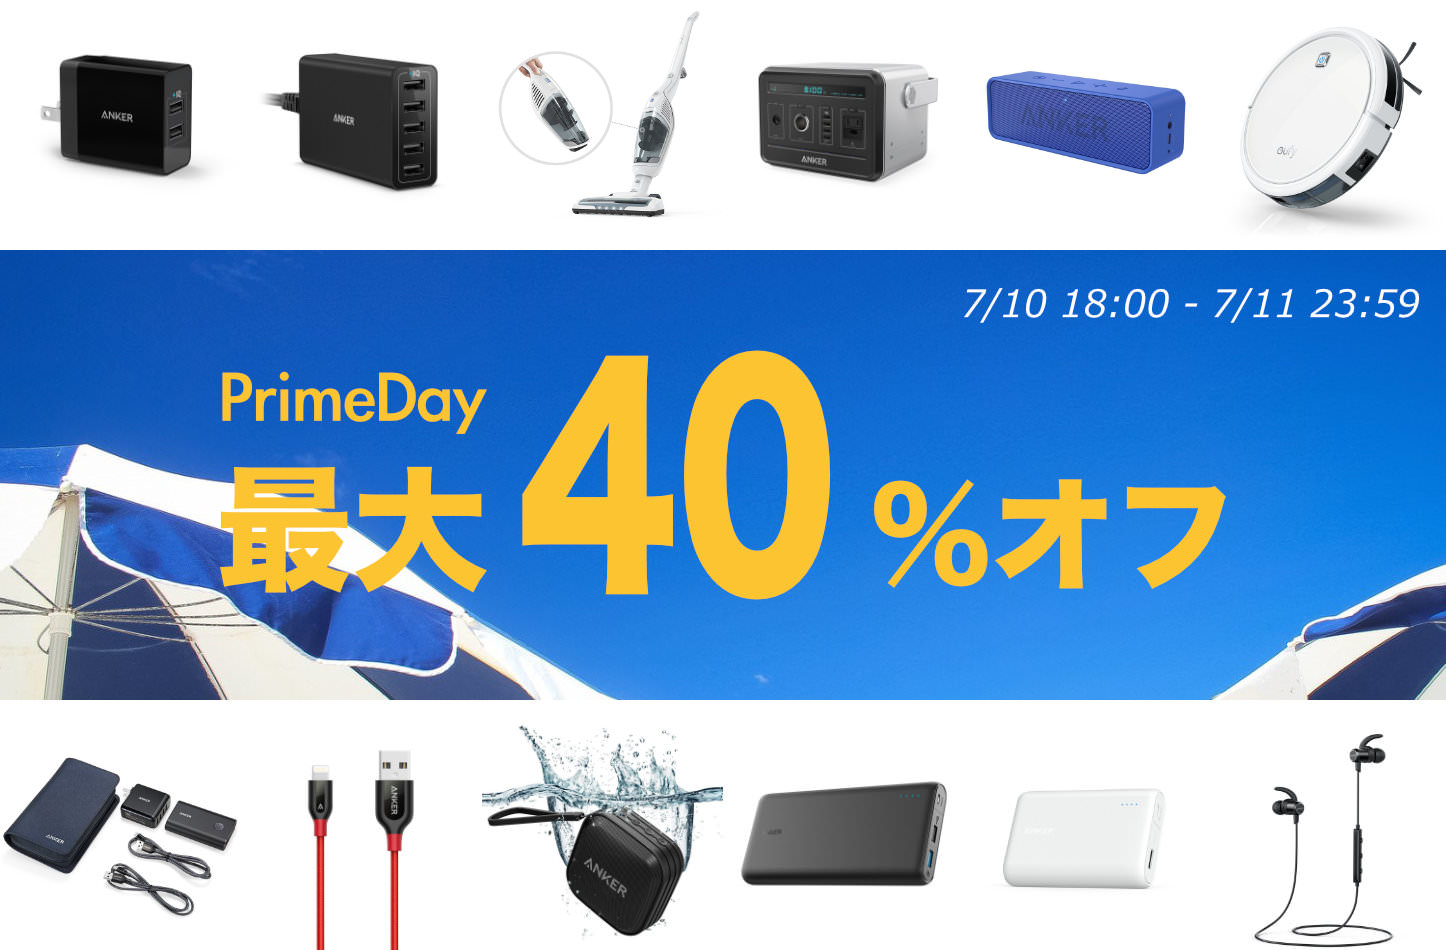 Anker Eufy Sale Today